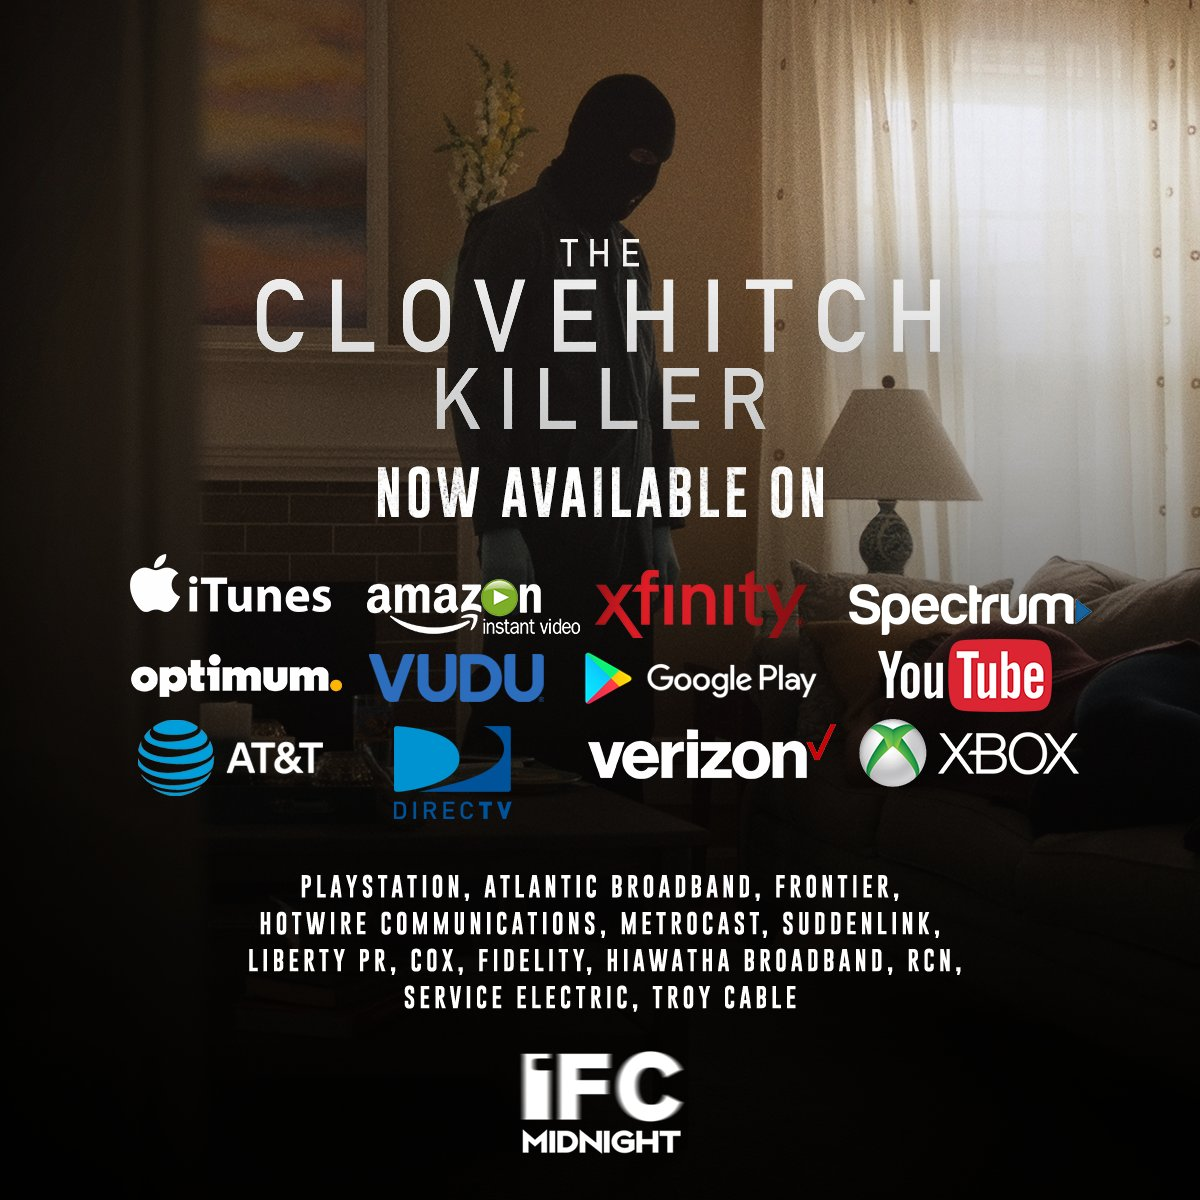 @AnAnimeGiraffe THE CLOVEHITCH KILLER is available on all these VOD outlets (please don't steal it).